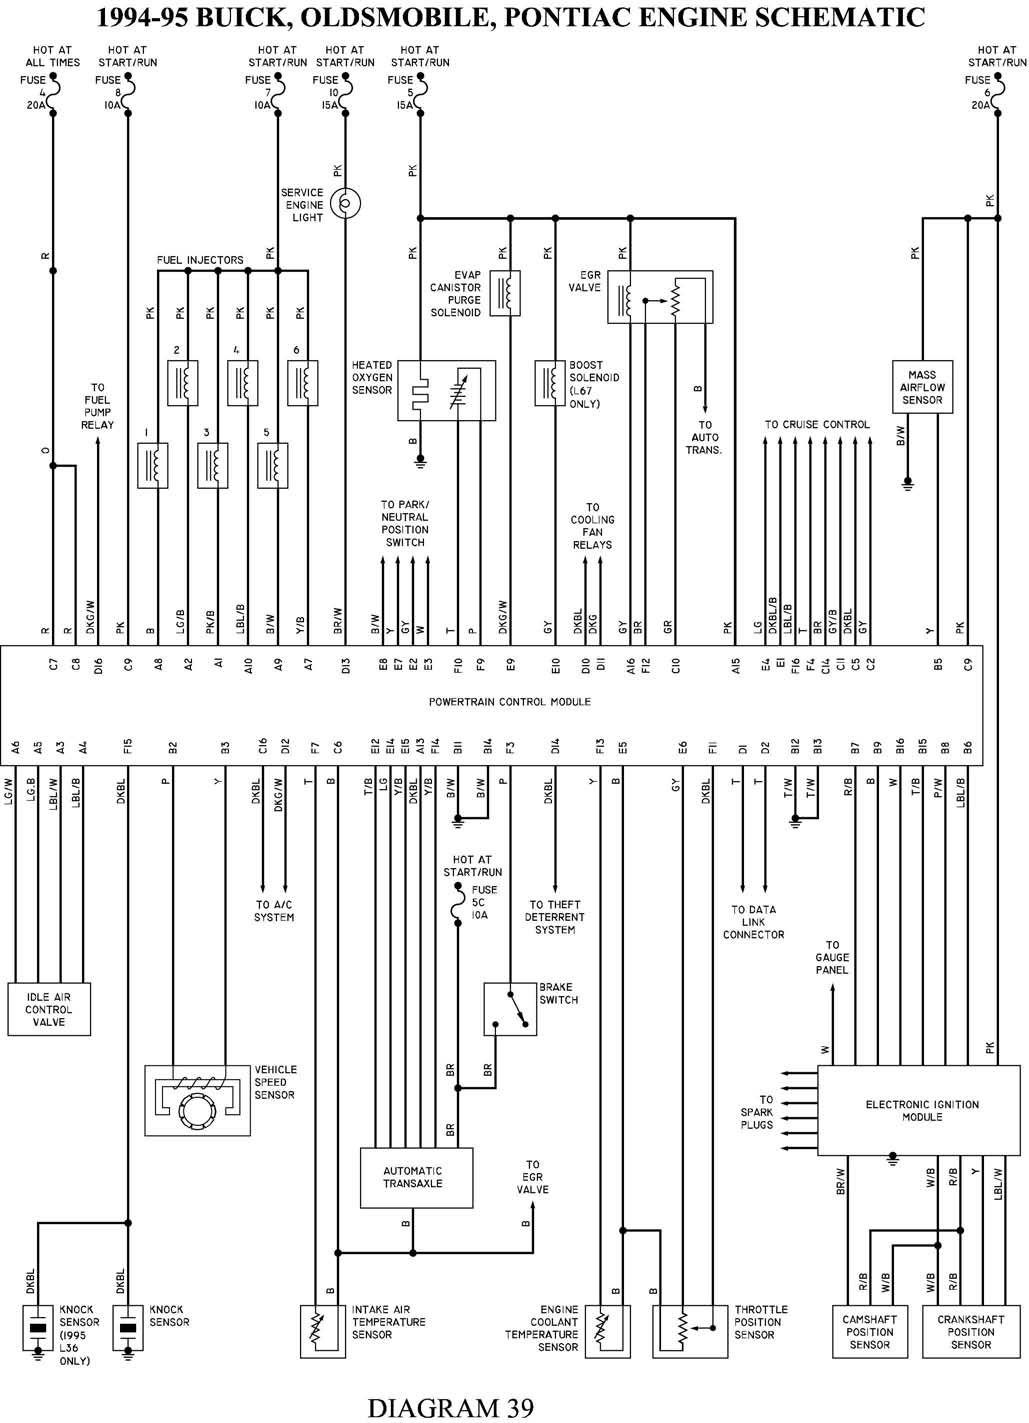 wiring diagram 1995 buick park avenue wiring block diagram Galant Wiring Diagram wiring diagram for 1994 buick park ave wiring block diagram 2002 buick park avenue wiring diagram wiring diagram 1995 buick park avenue